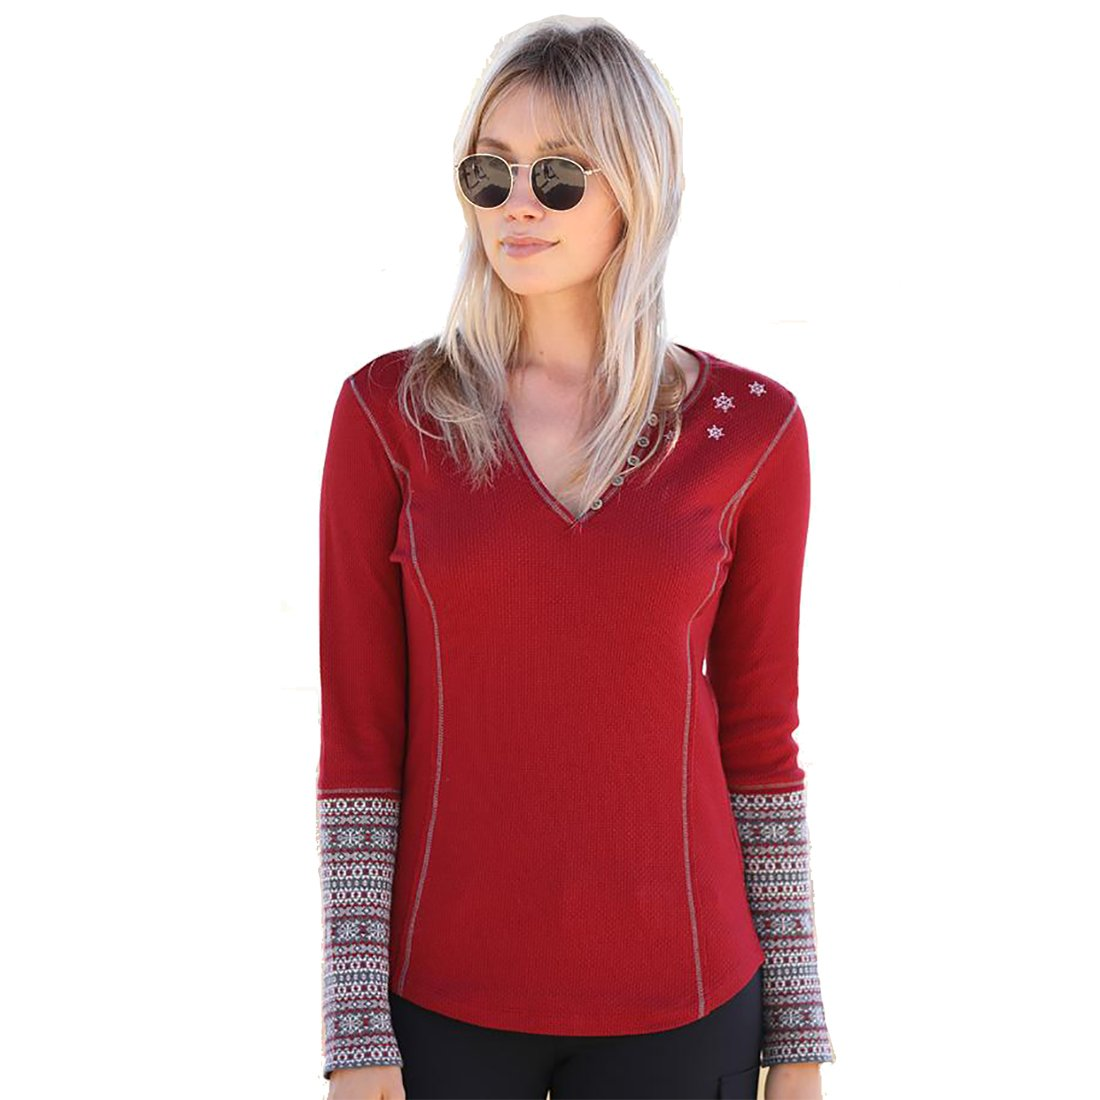 Alp-N-Rock Womens Nieve Thermal Henley Shirt (Dark Red) (Large)